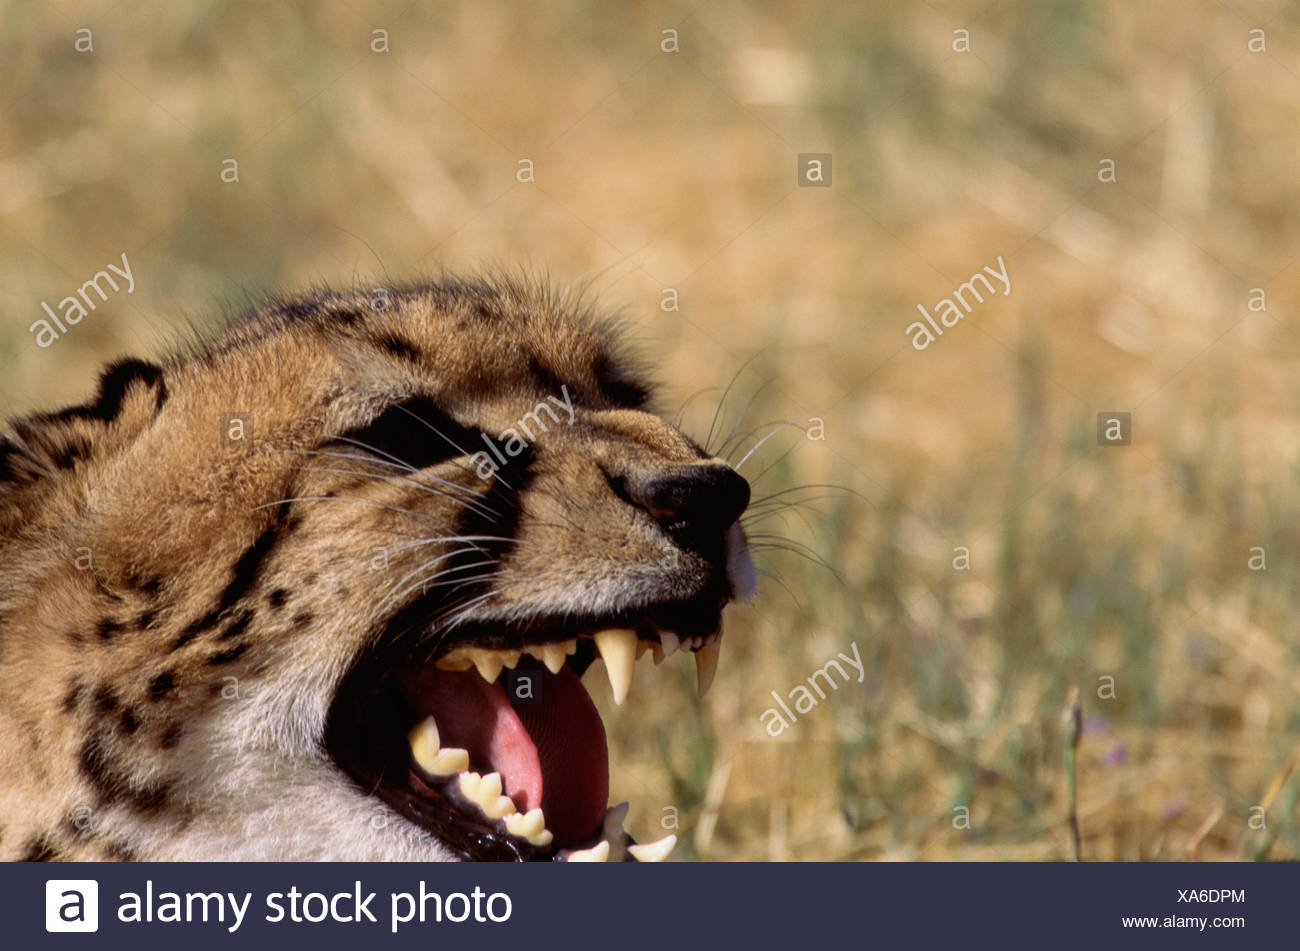 Close-up of a cheetah snarling (Acinonyx jubatus) - Stock Image